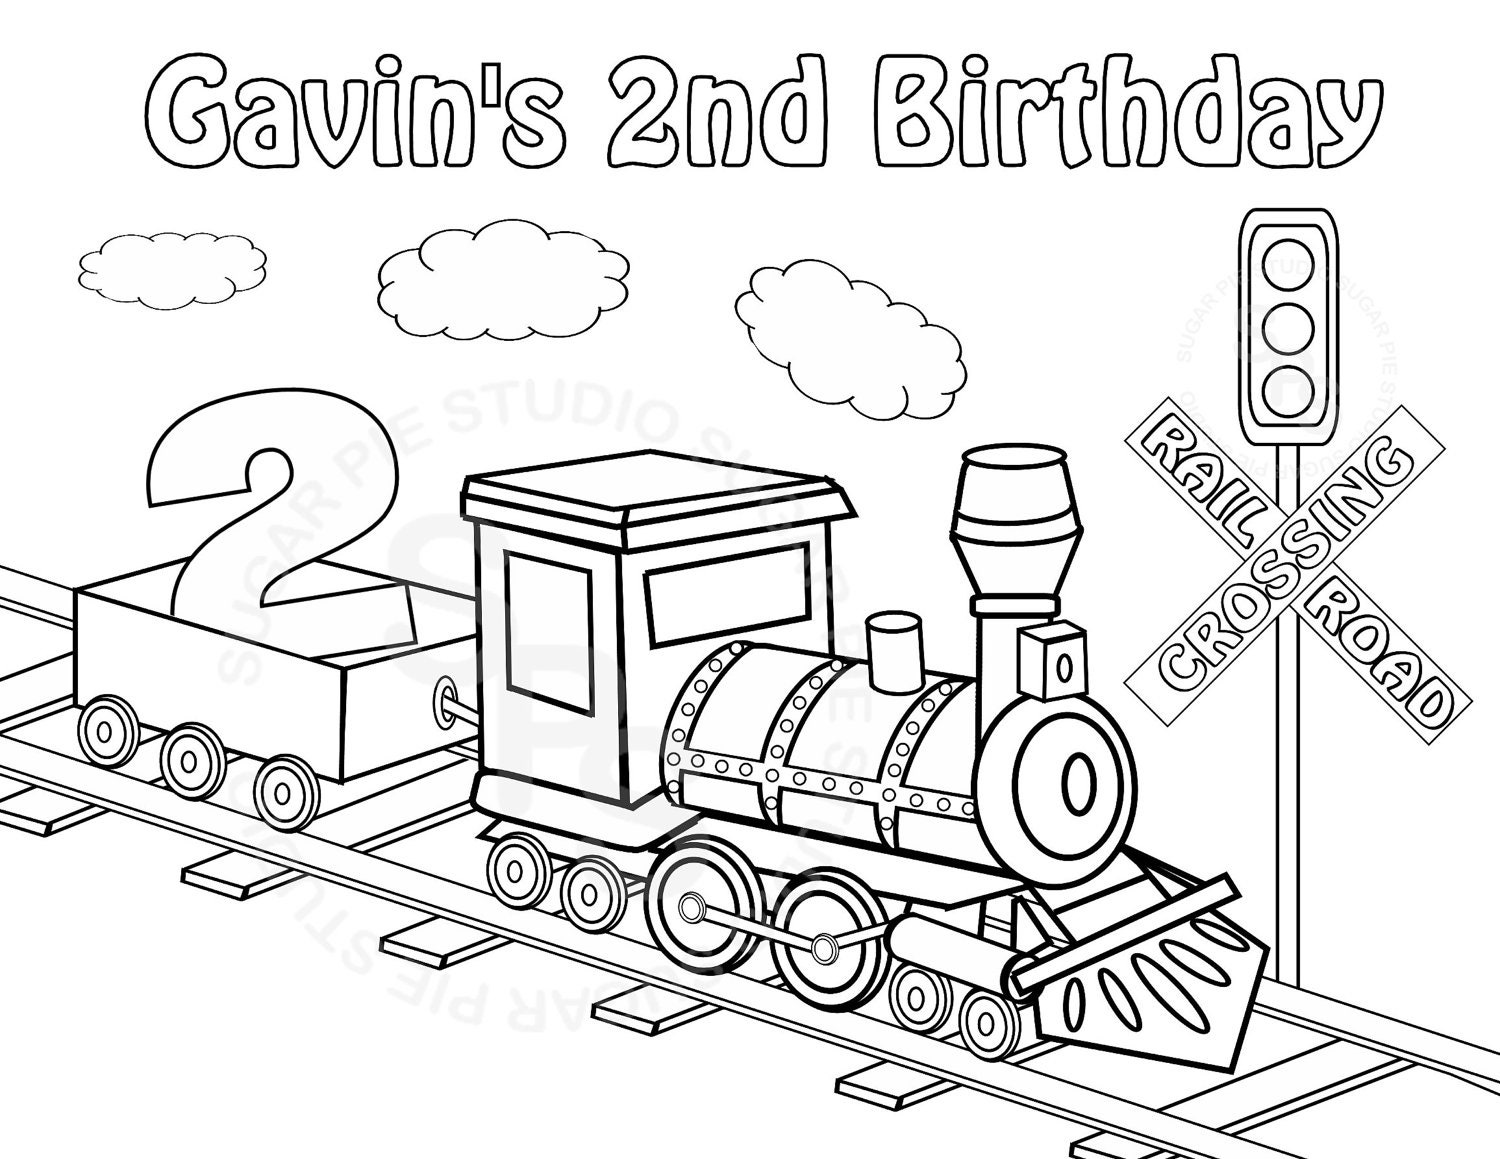 Adult Cute Diesel Train Coloring Pages Gallery Images beauty choo train coloring pages for kids and railroad images